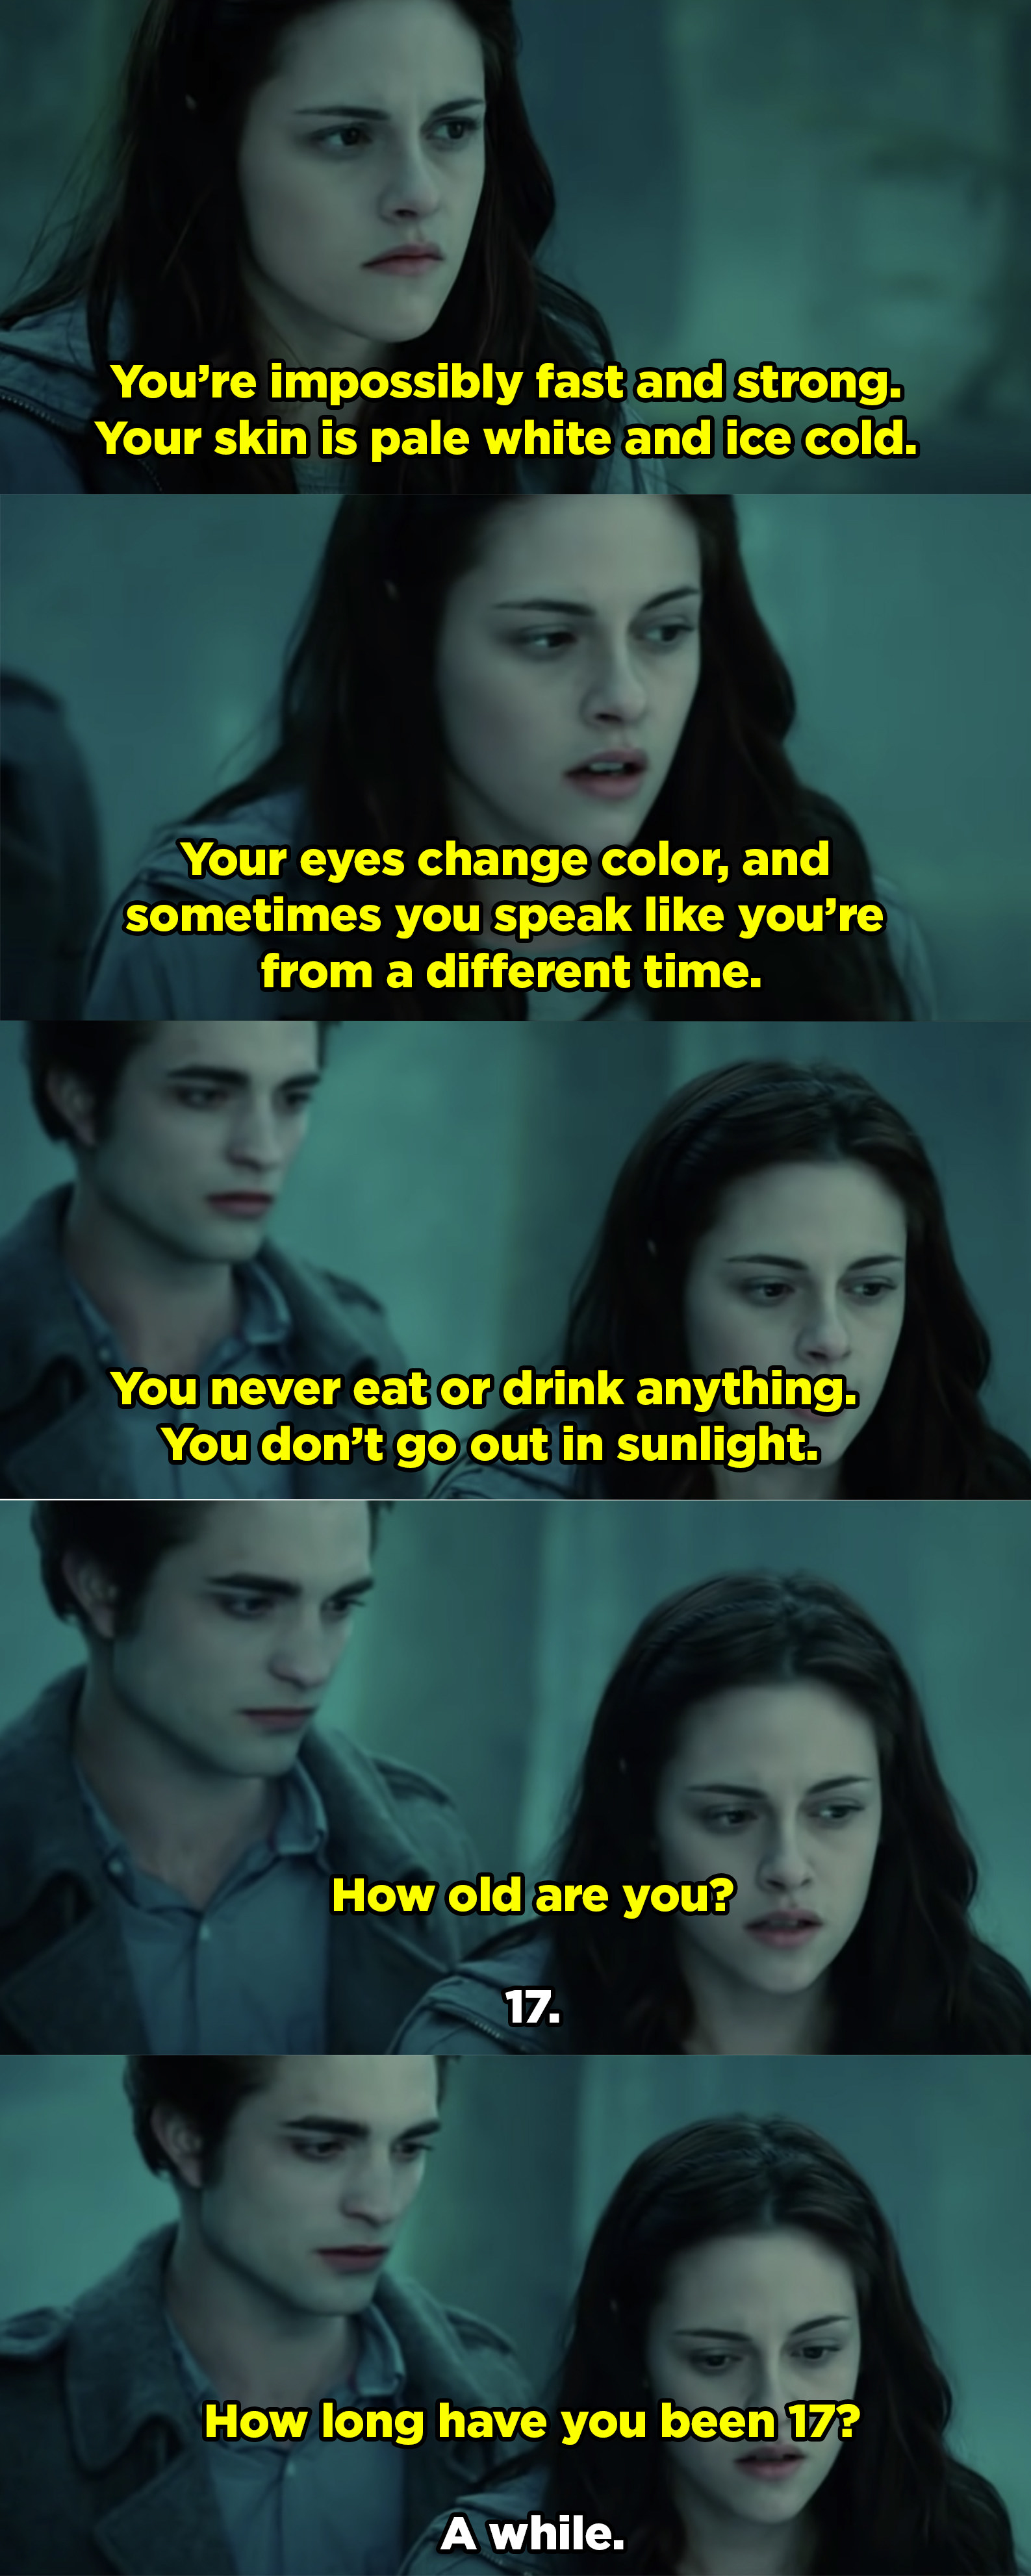 Bella describing how Edward is pale, fast, and never goes out into sunlight — insinuating that he's a vampire.